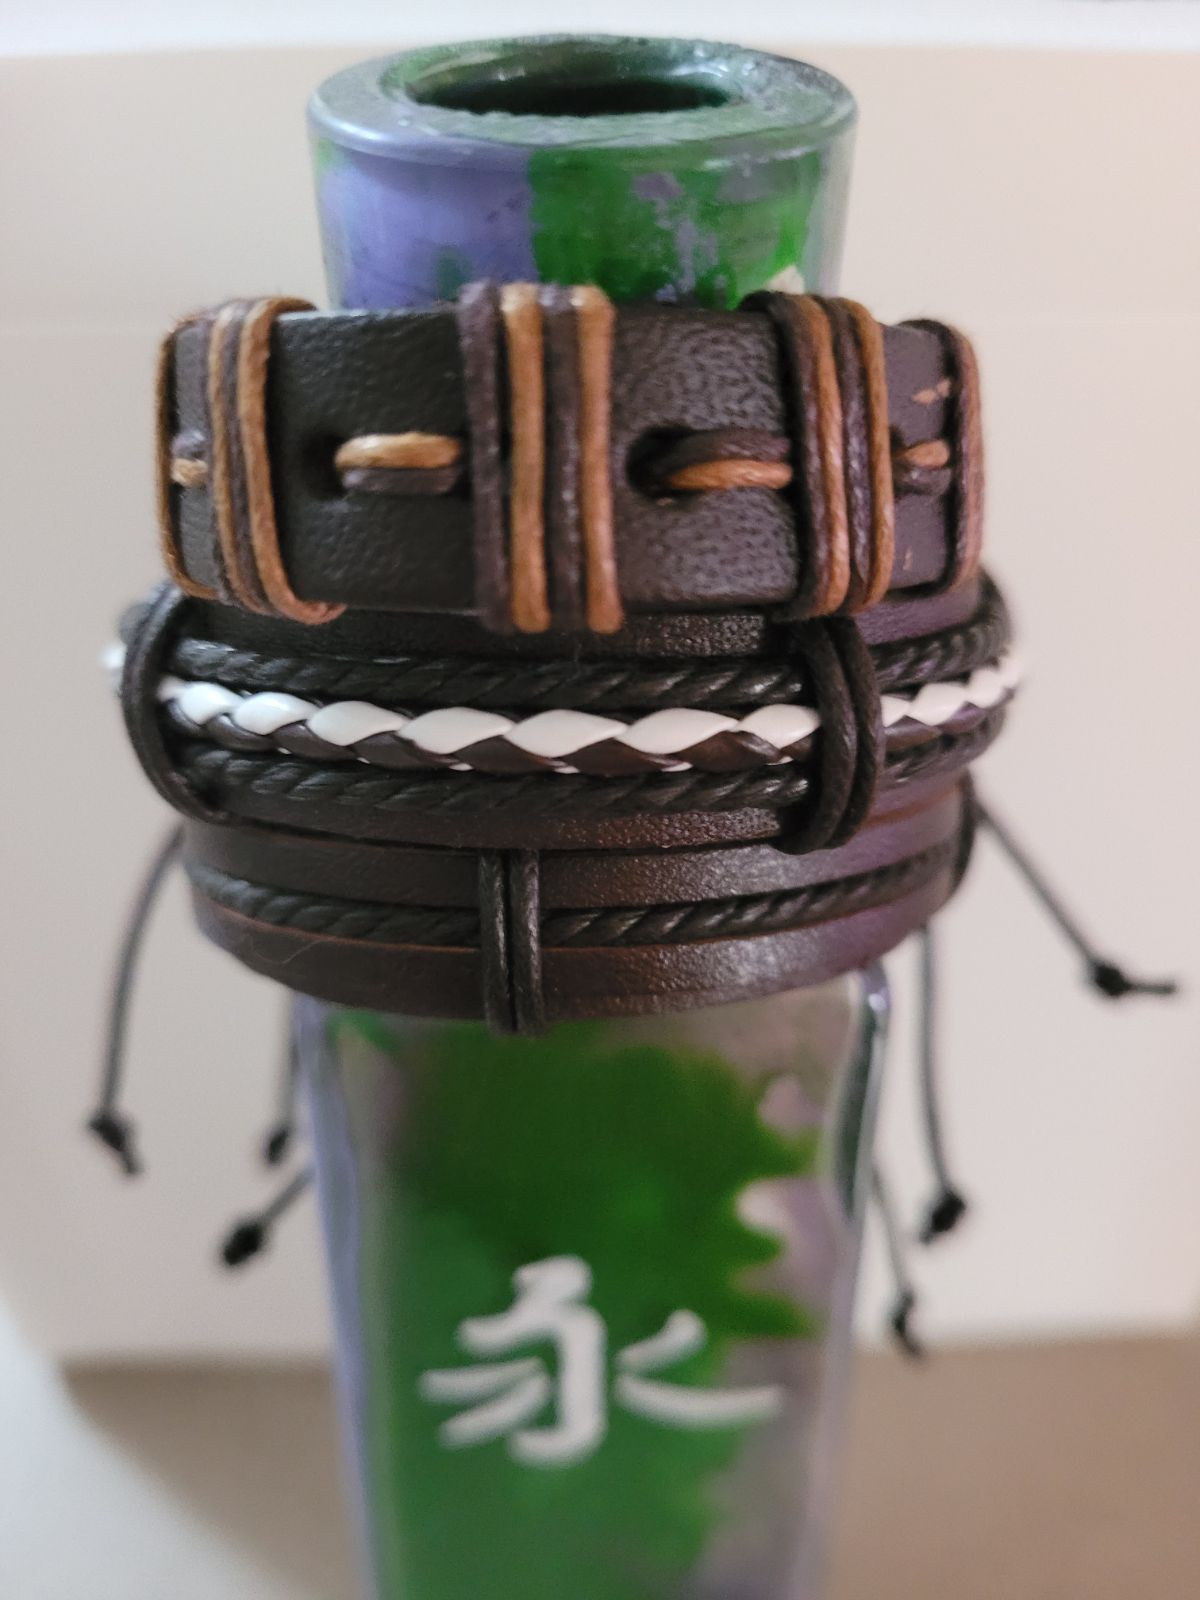 3 handmade leather, unisex bracelets.